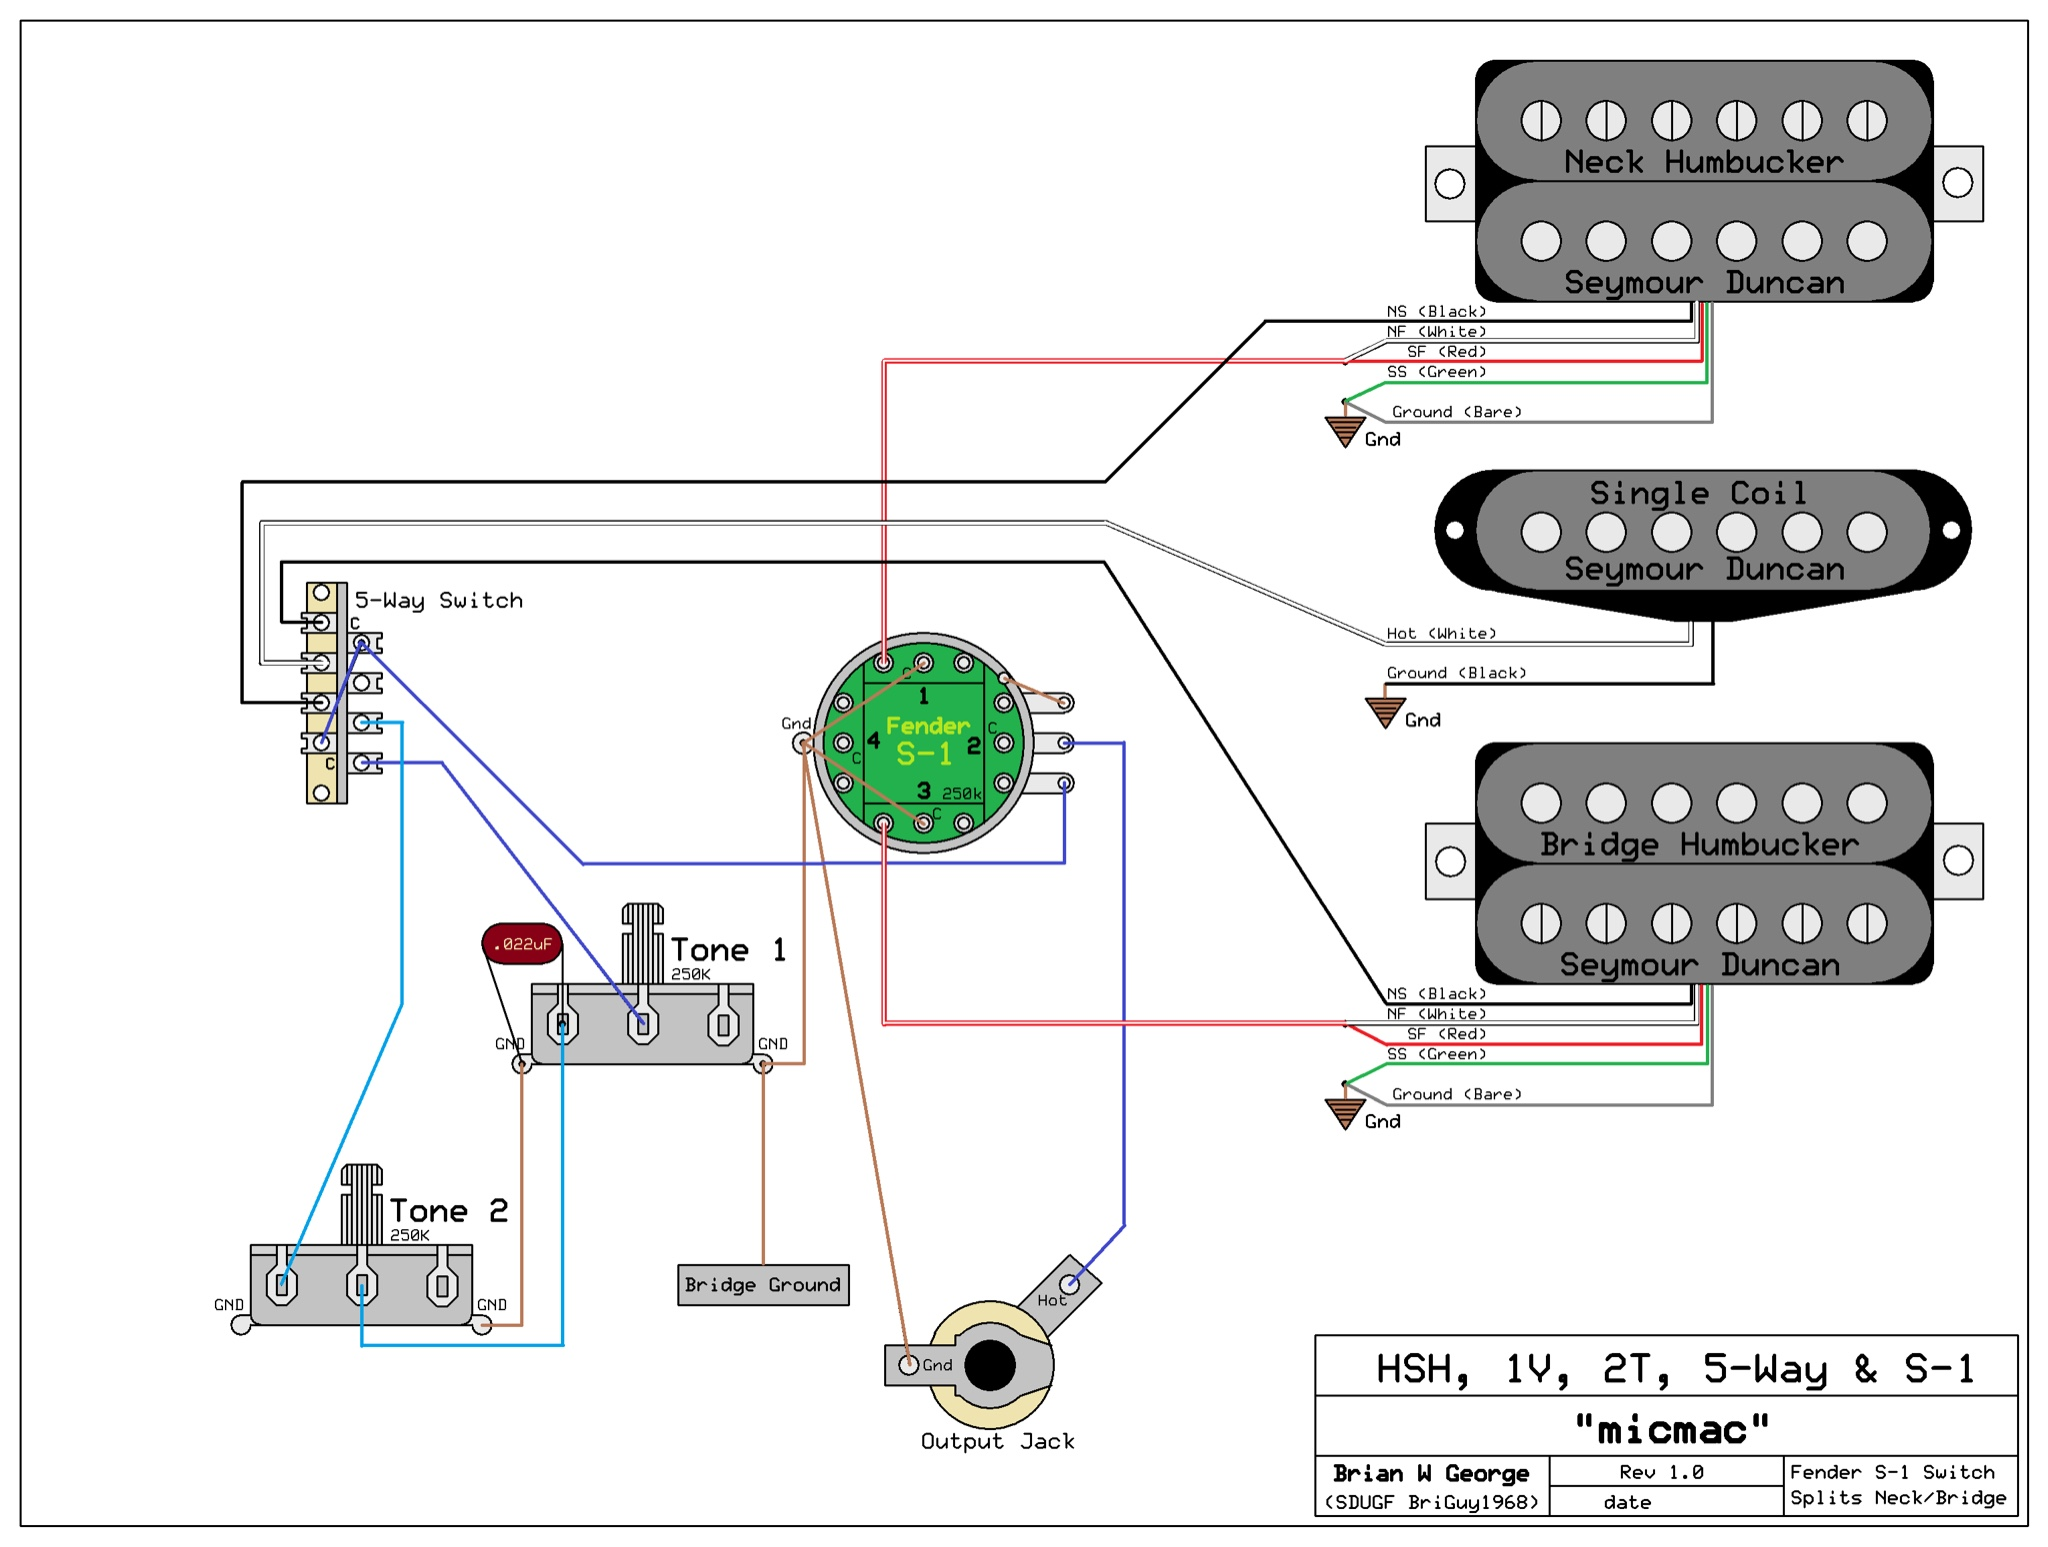 779fu Ford F150 Right Rear Taillight Out Fuse further Ford Fog Light Wiring Harness likewise Ace Frehley Wiring Diagram furthermore 2004 Ford F150 Stereo Wiring Diagram as well 1998 Ford F150 Fuse Location. on 1998 ford f 150 fuse box location